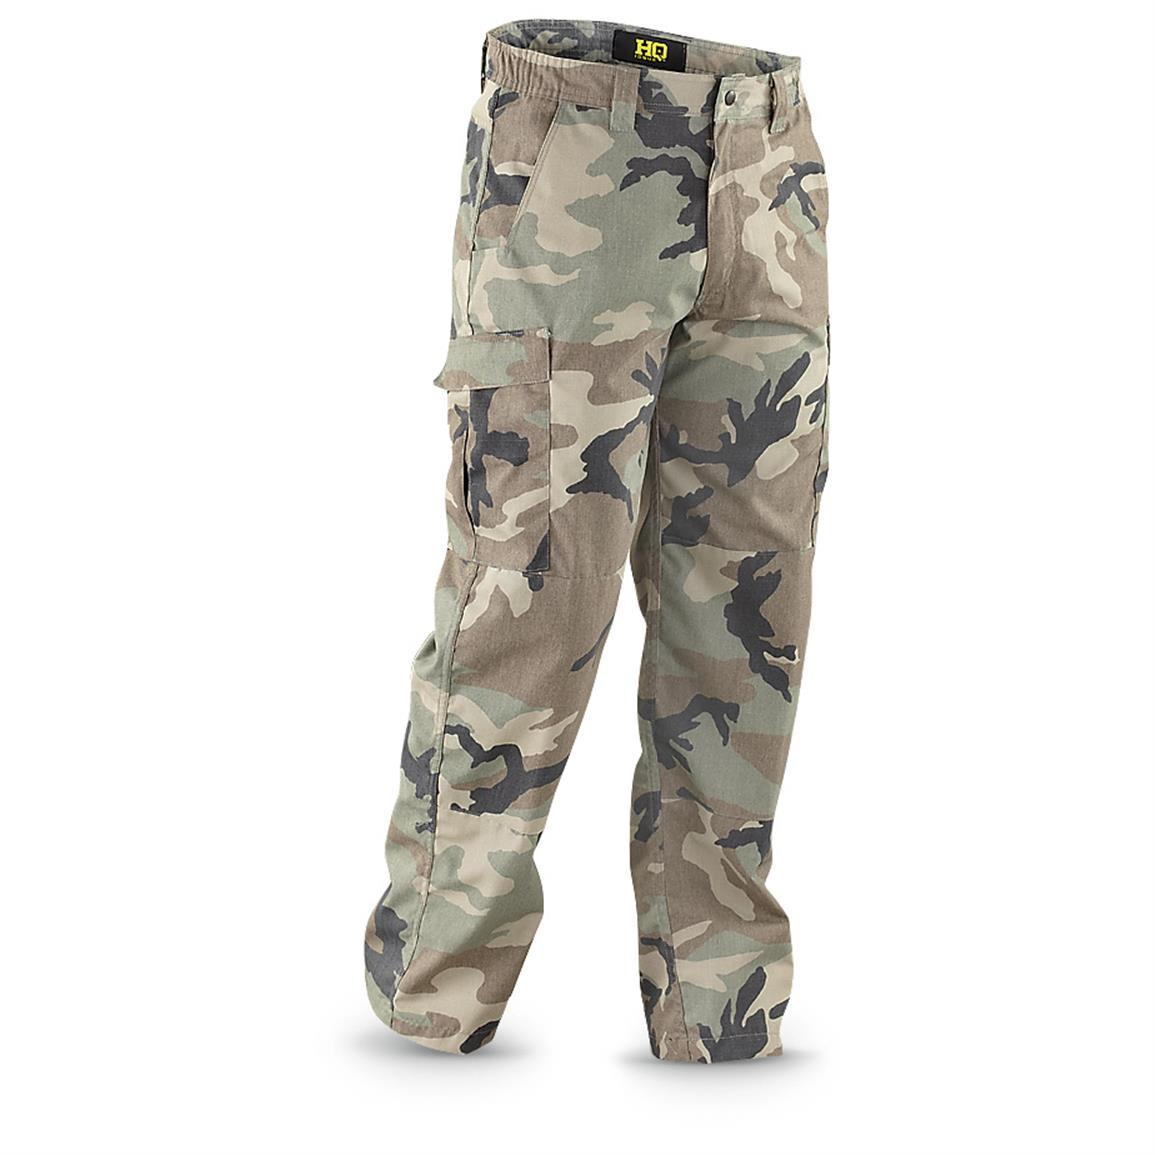 Army Pants: How to Wear Them Unthreateningly